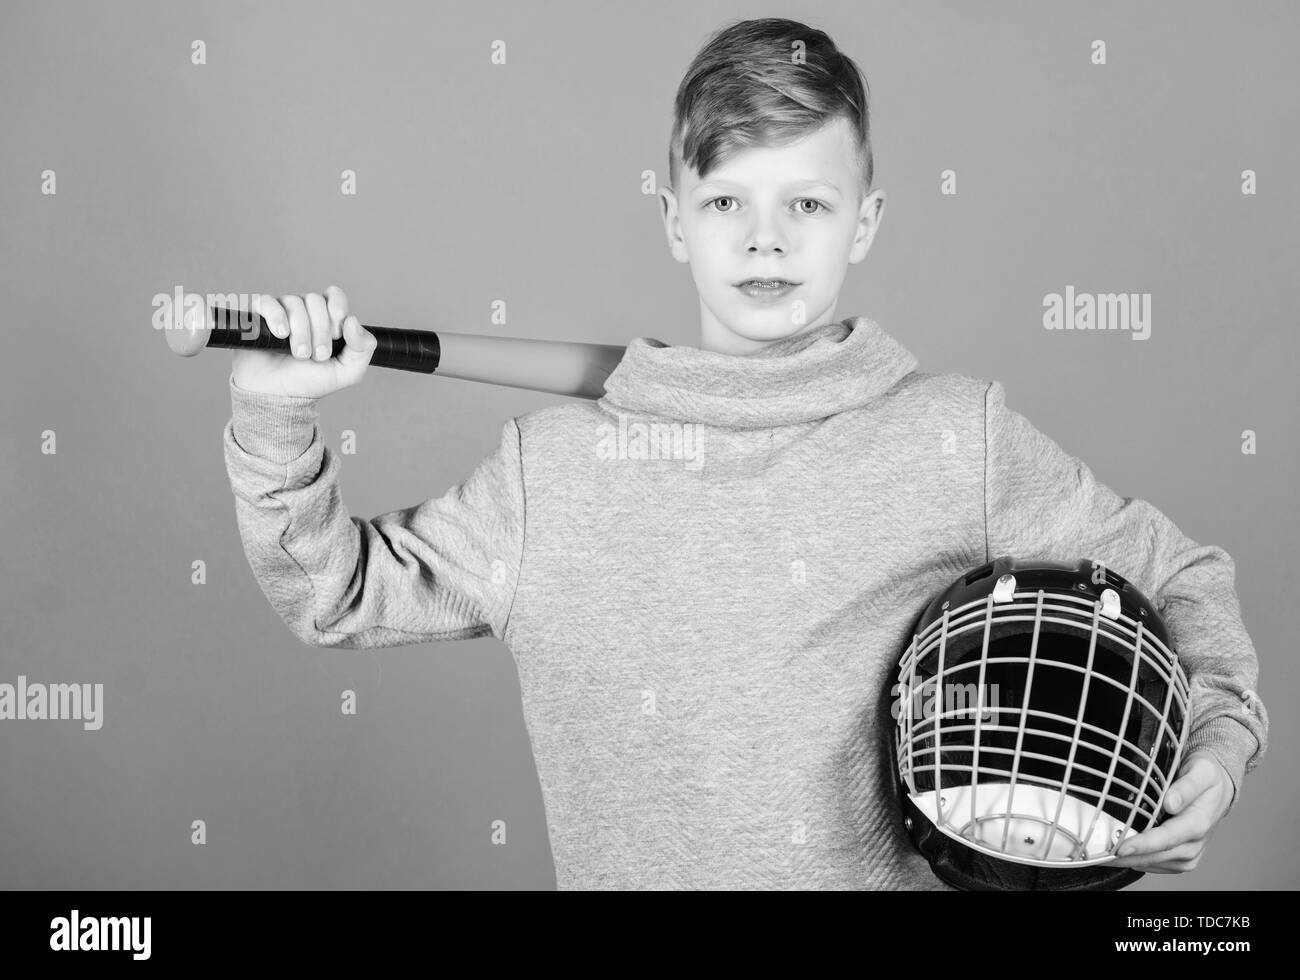 Gym workout of teen boy. Fitness diet brings health and energy. Baseball bat and helmet. Success. Childhood activity. Sport game. child sportsman. Confident baseball player. Boy on baseball stadium. Stock Photo